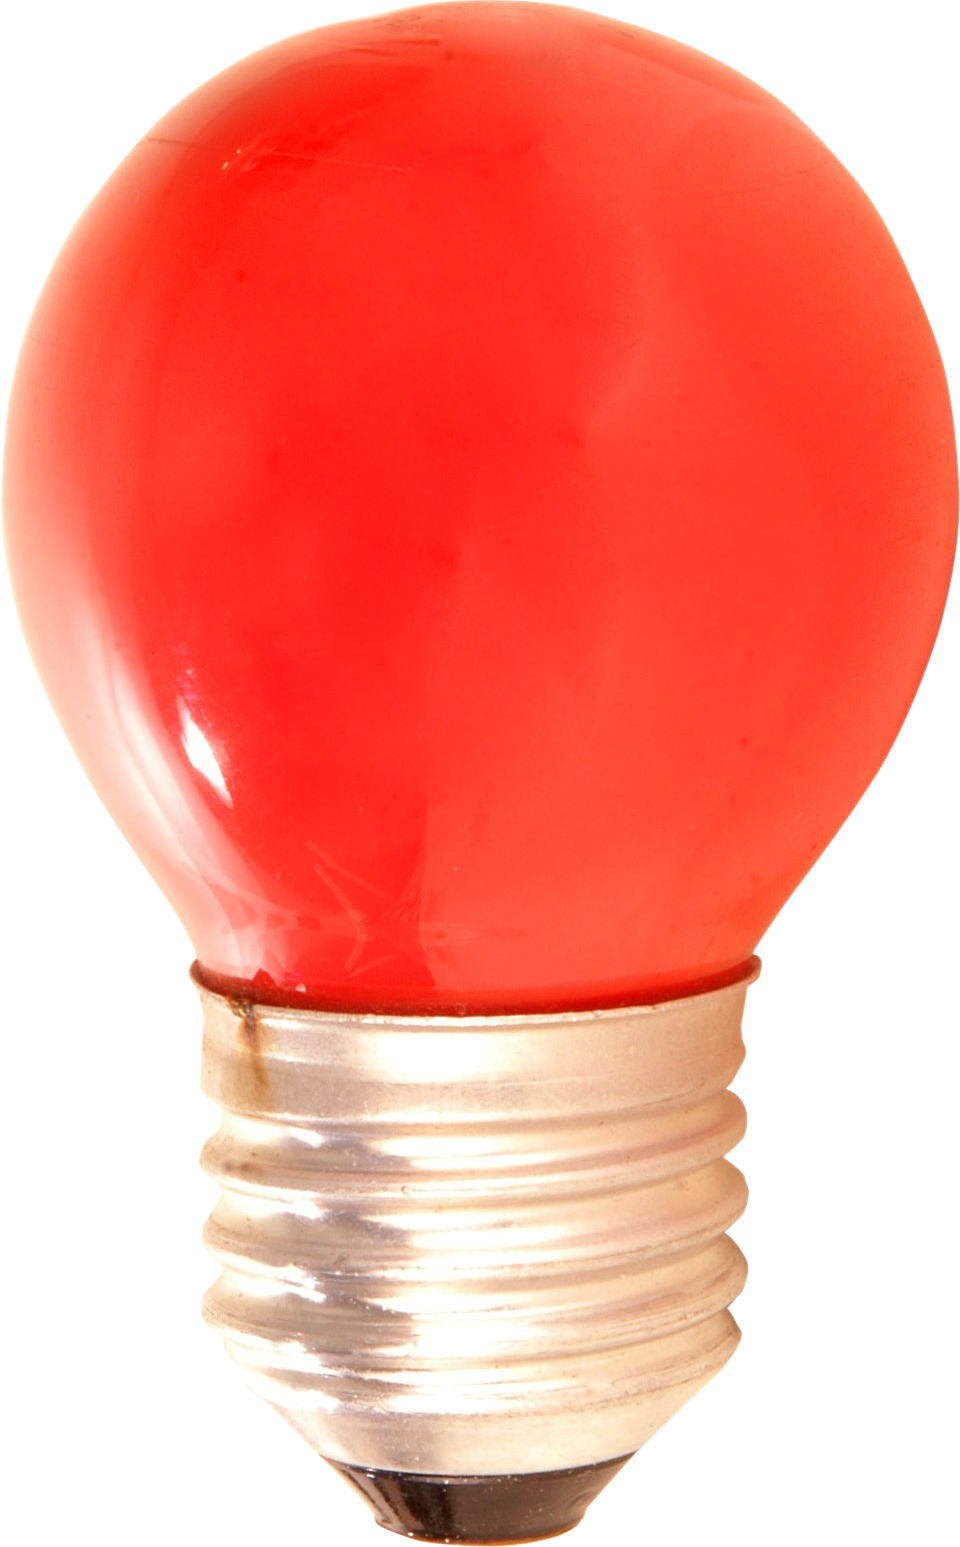 Lamp clipart white background. Red png image purepng